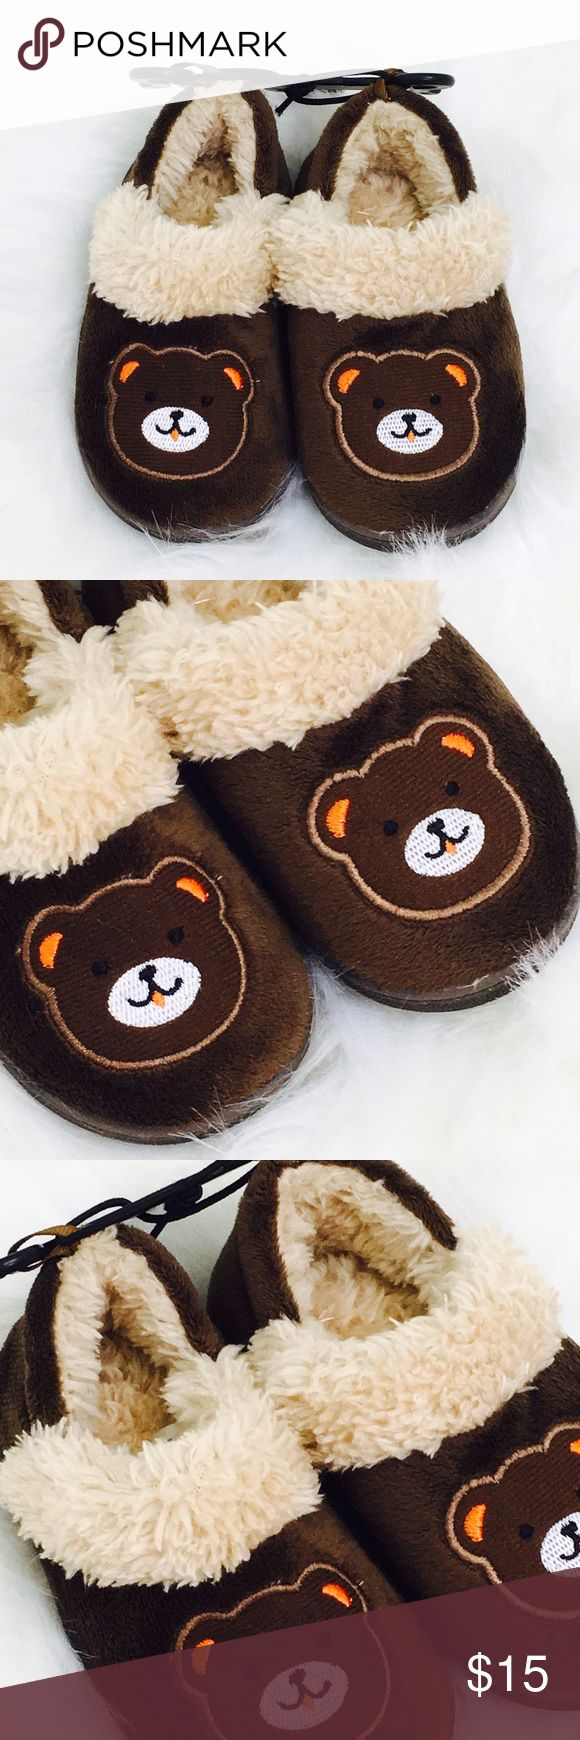 🆕 Boys Brown Teddy Bear Slippers! 🆕 Size small 5-6 Toddler Boys! Shoes Slippers